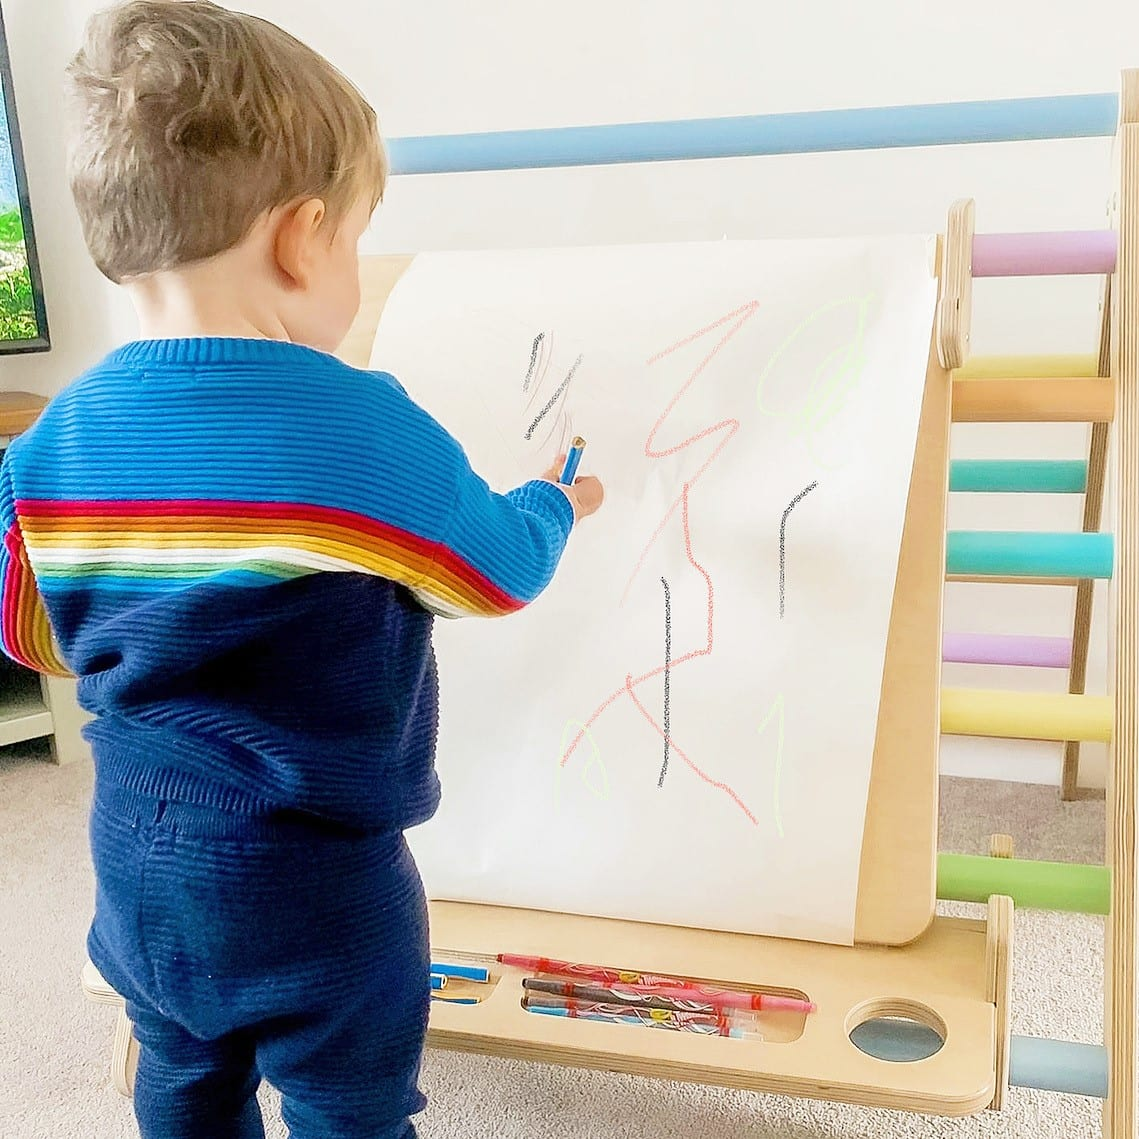 Toddler at Easel Triangle